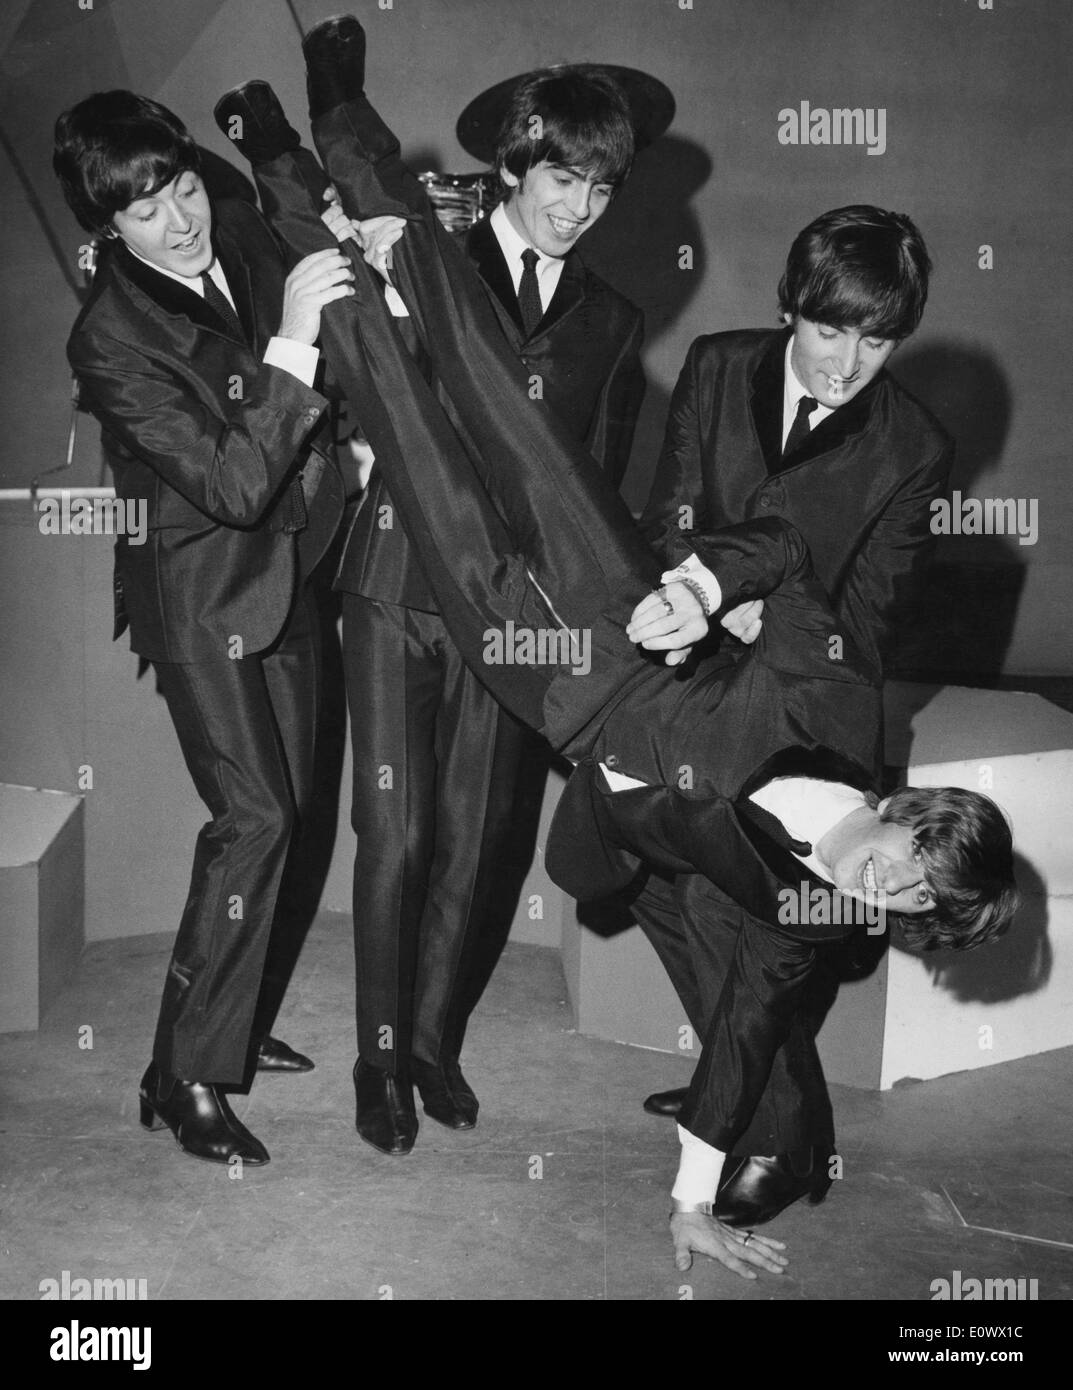 The Beatles members holding Ringo Starr upside down - Stock Image